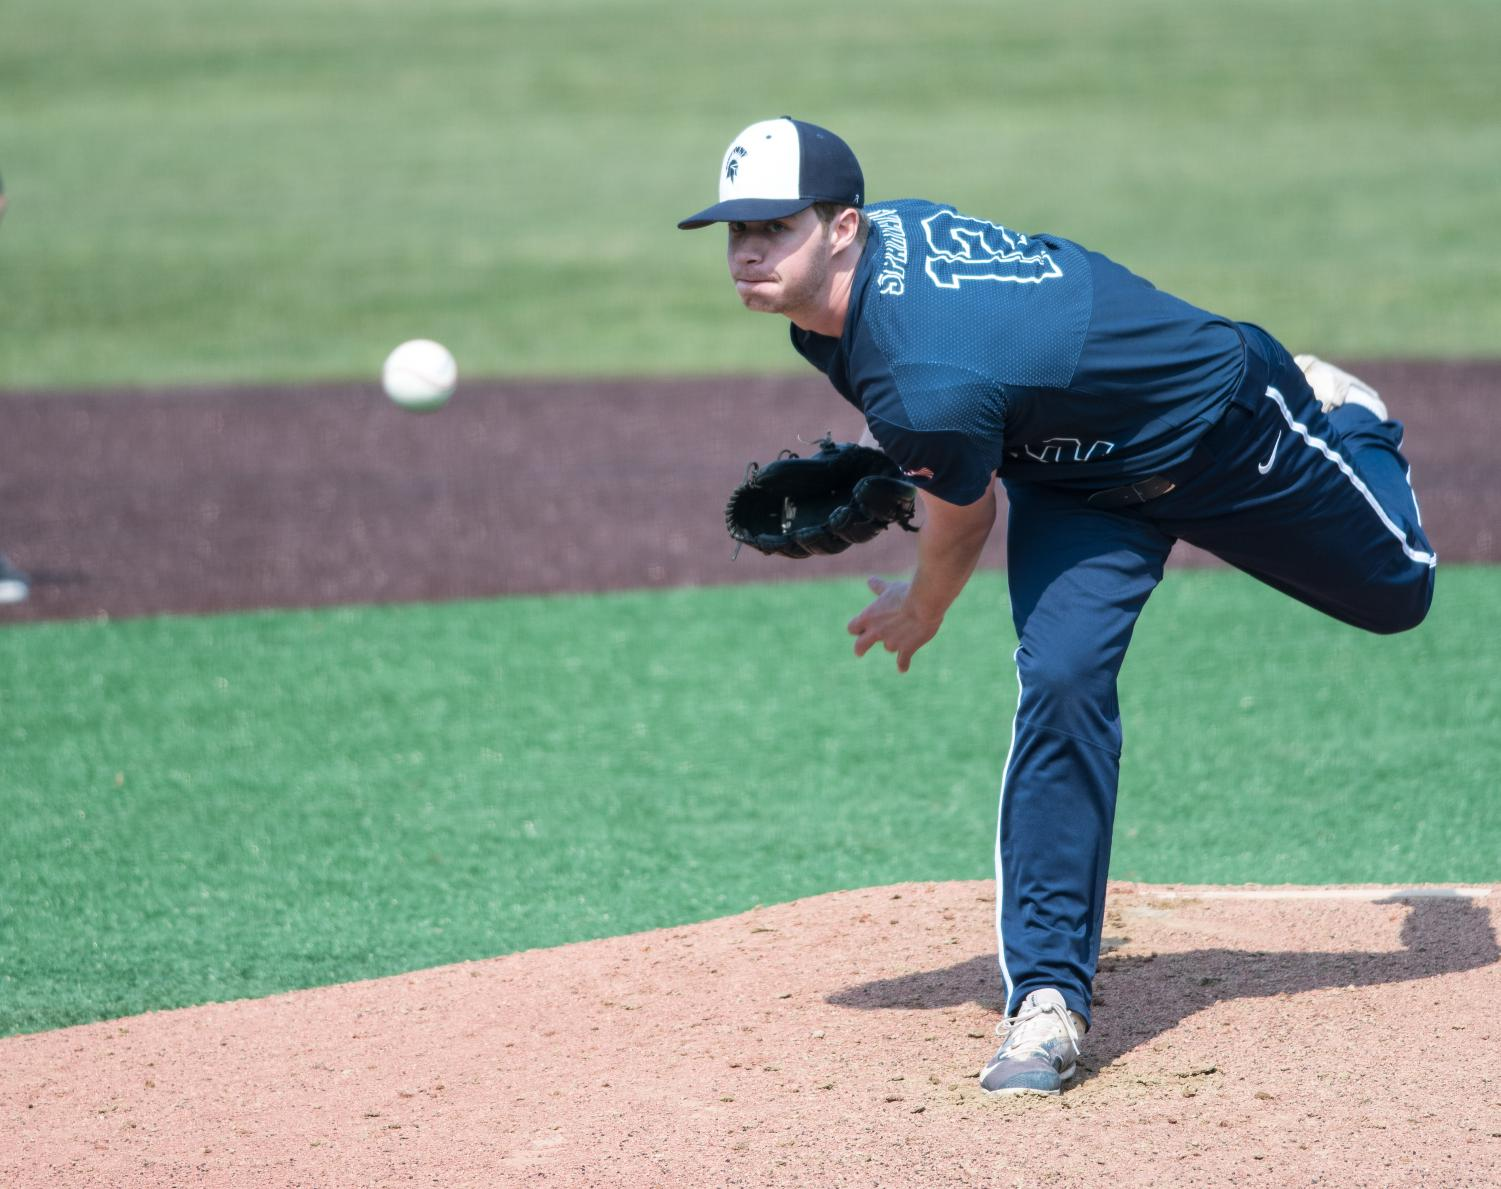 The baseball team moved up to No. 10 in the Division III rankings with a dominant performance over New York University.